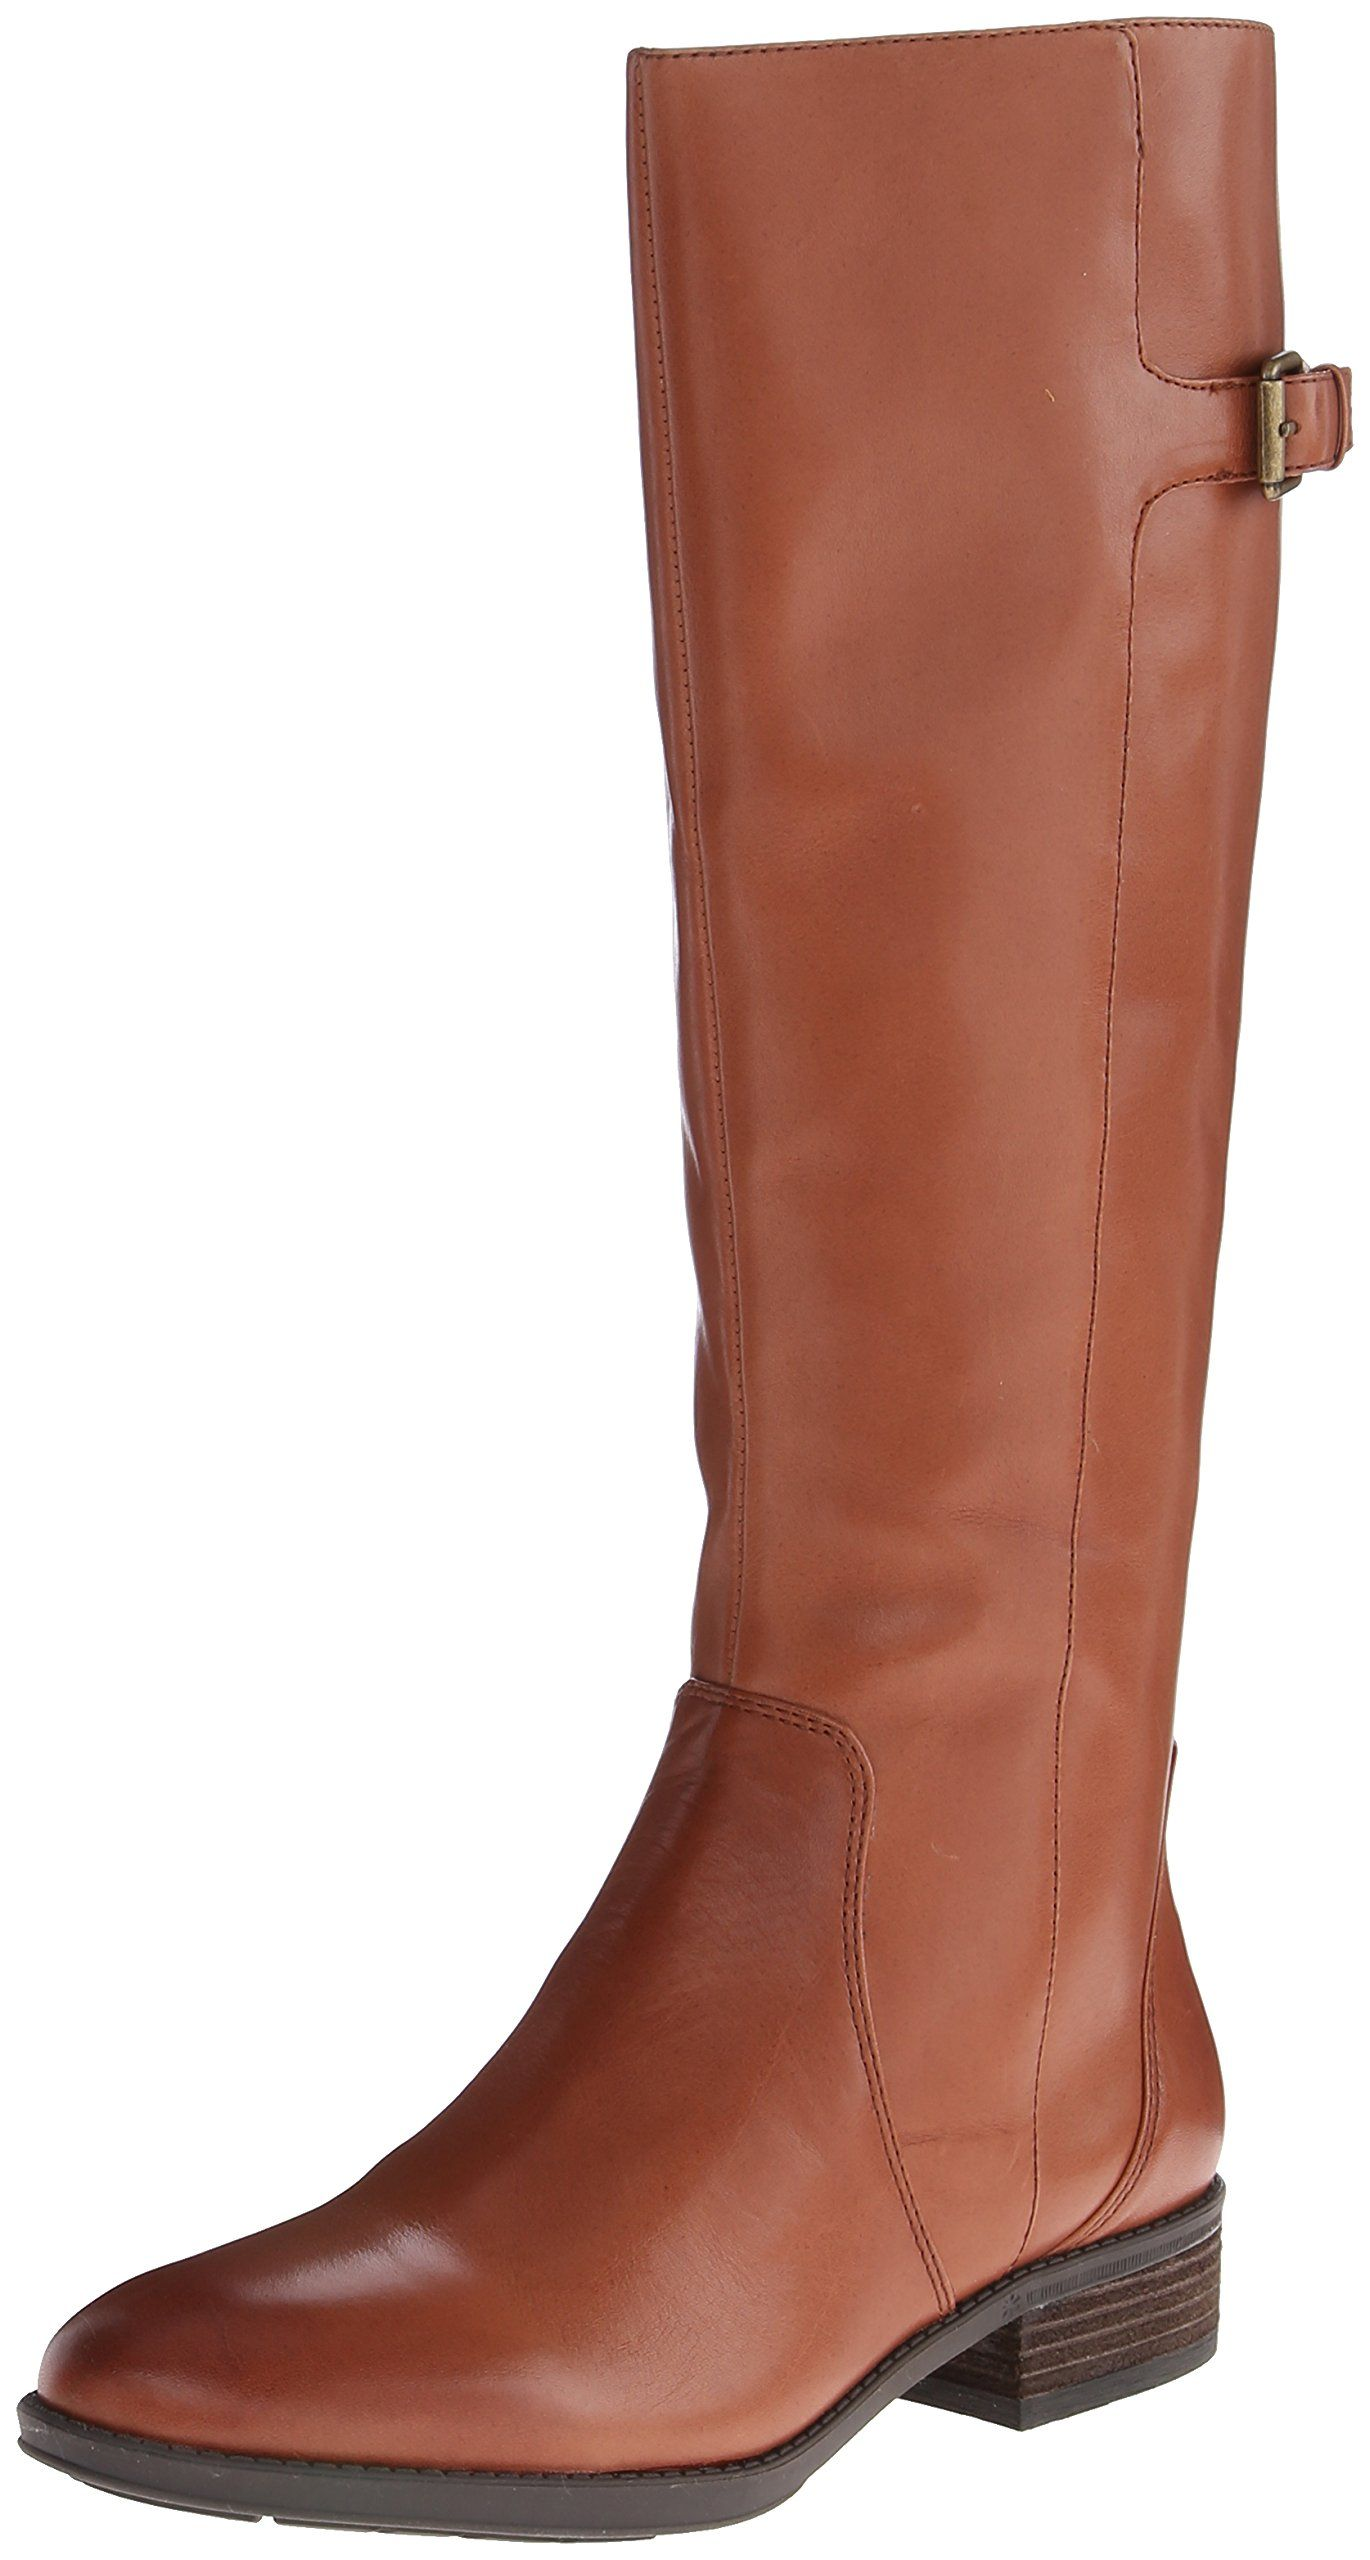 376e745c0 Amazon.com  Sam Edelman Women s Patton Riding Boot  Clothing